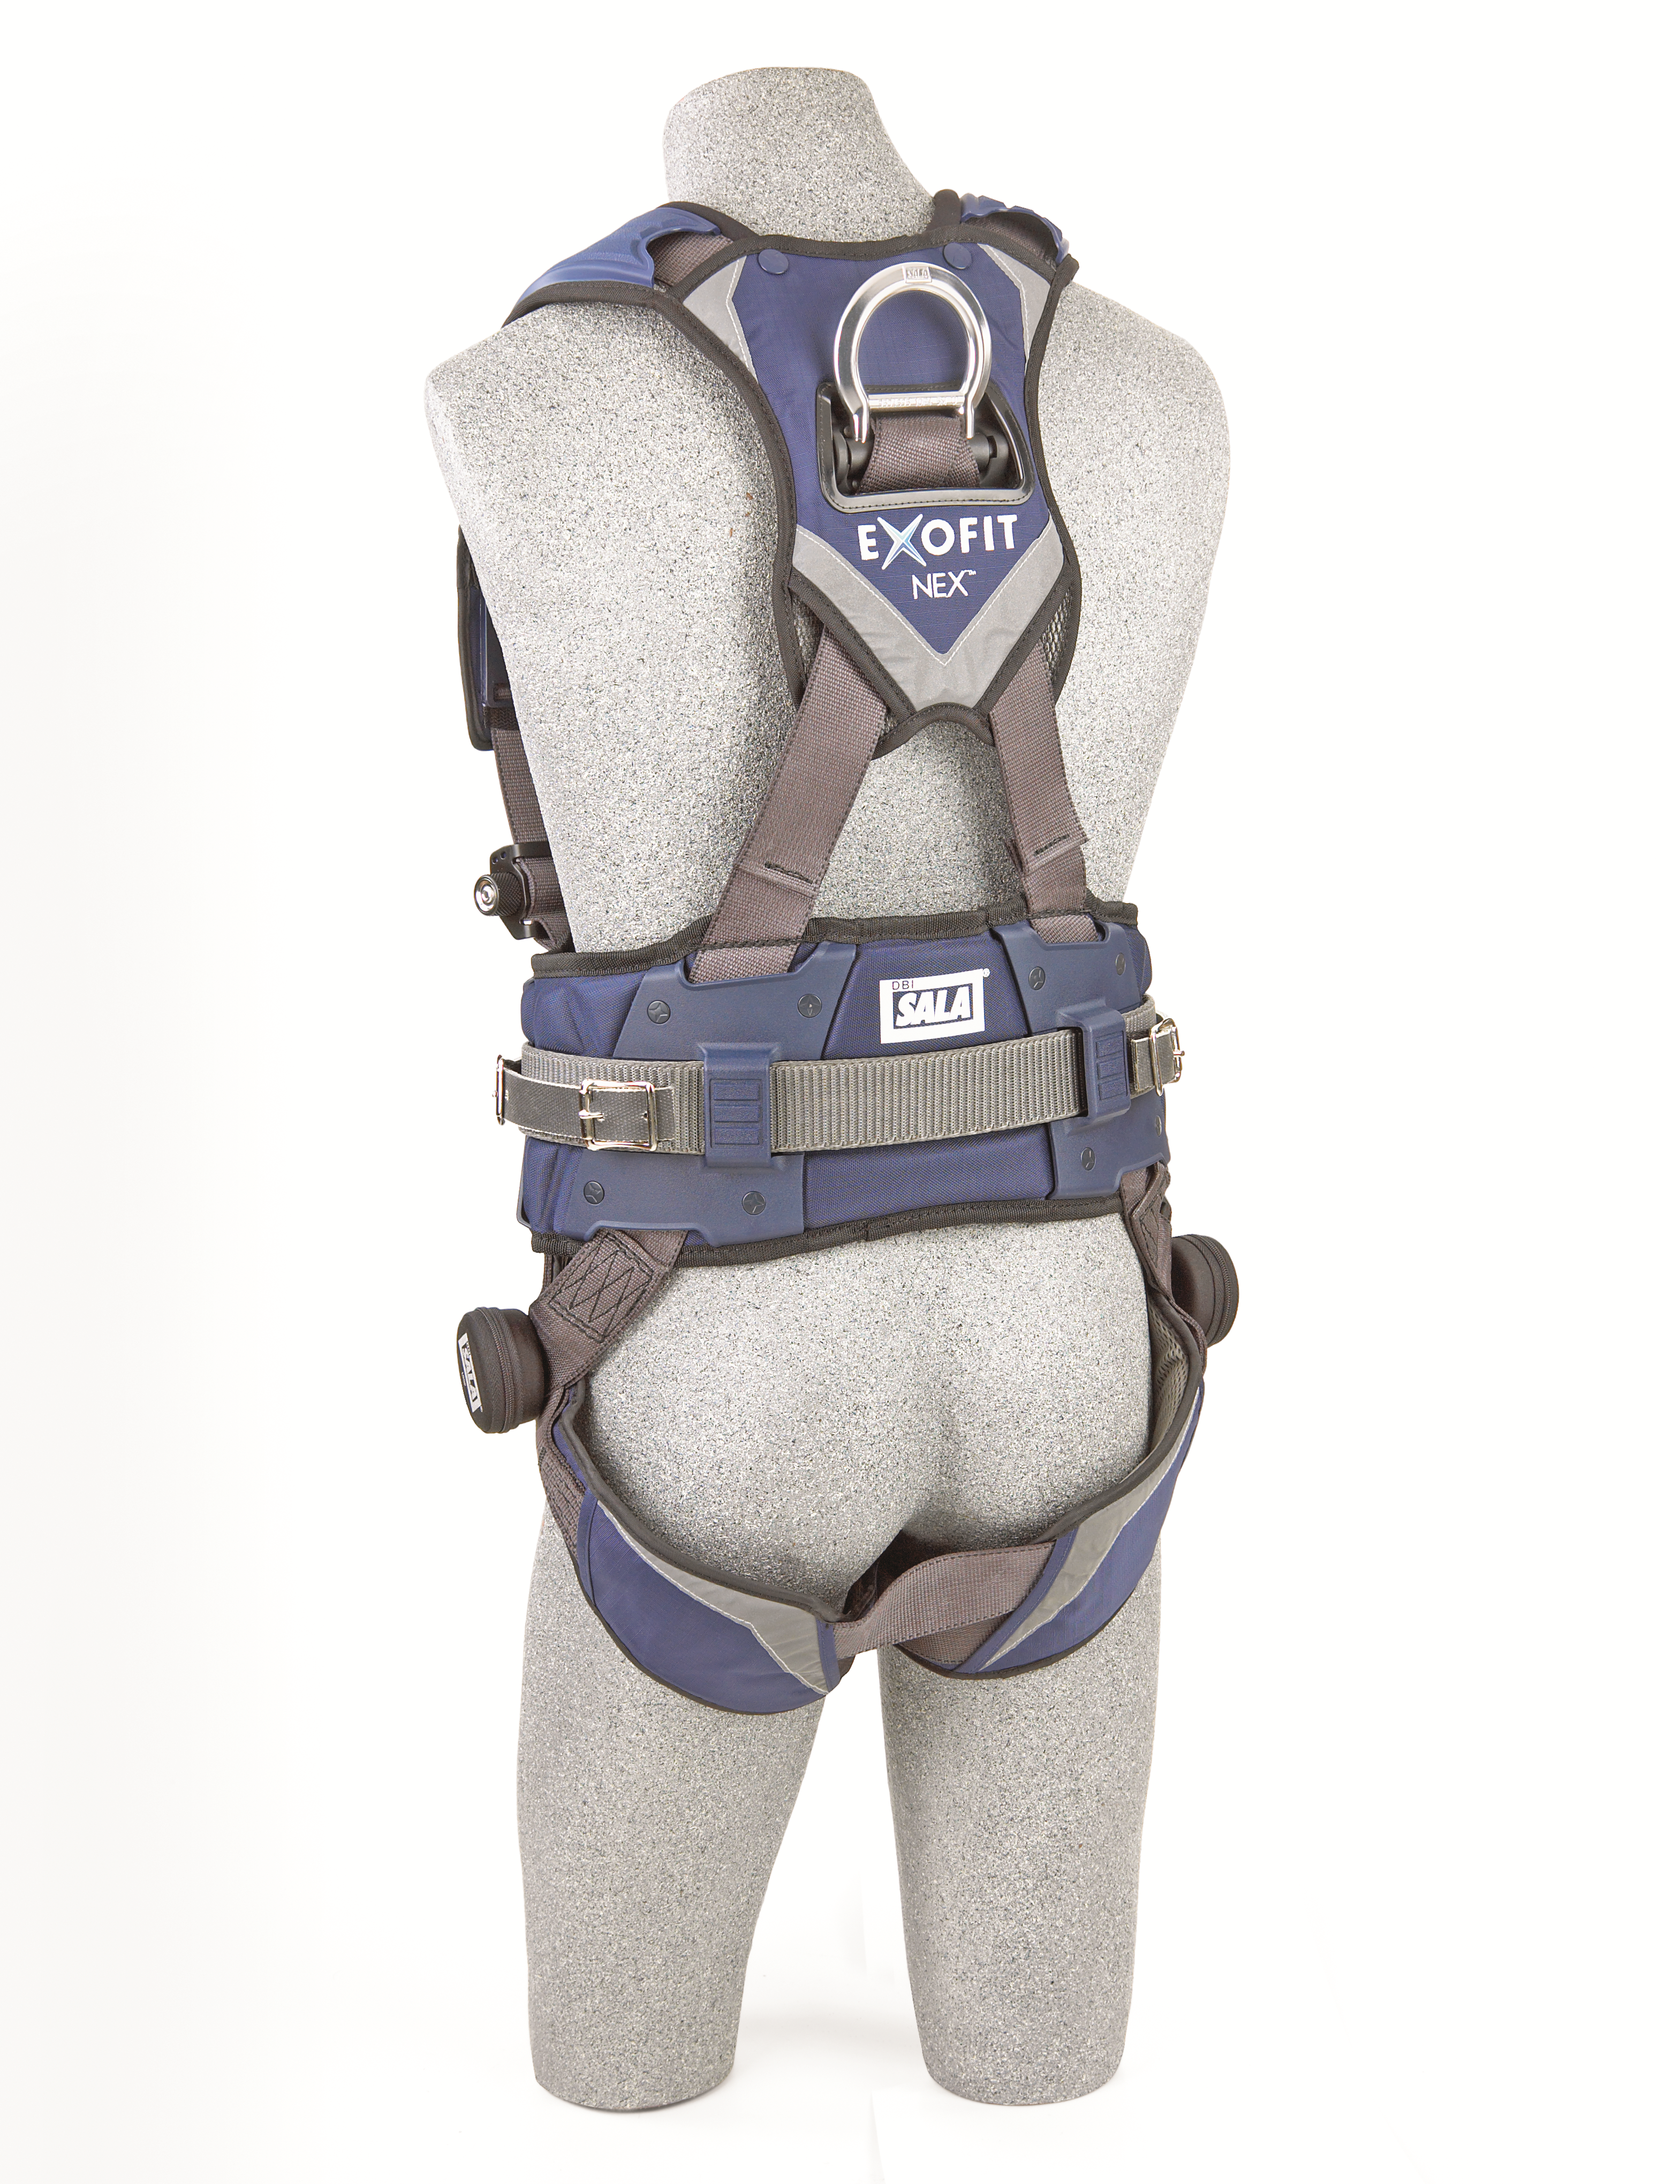 ExoFit NEX Mining Vest Harness, Quick-Connect Chest and Legs, Back